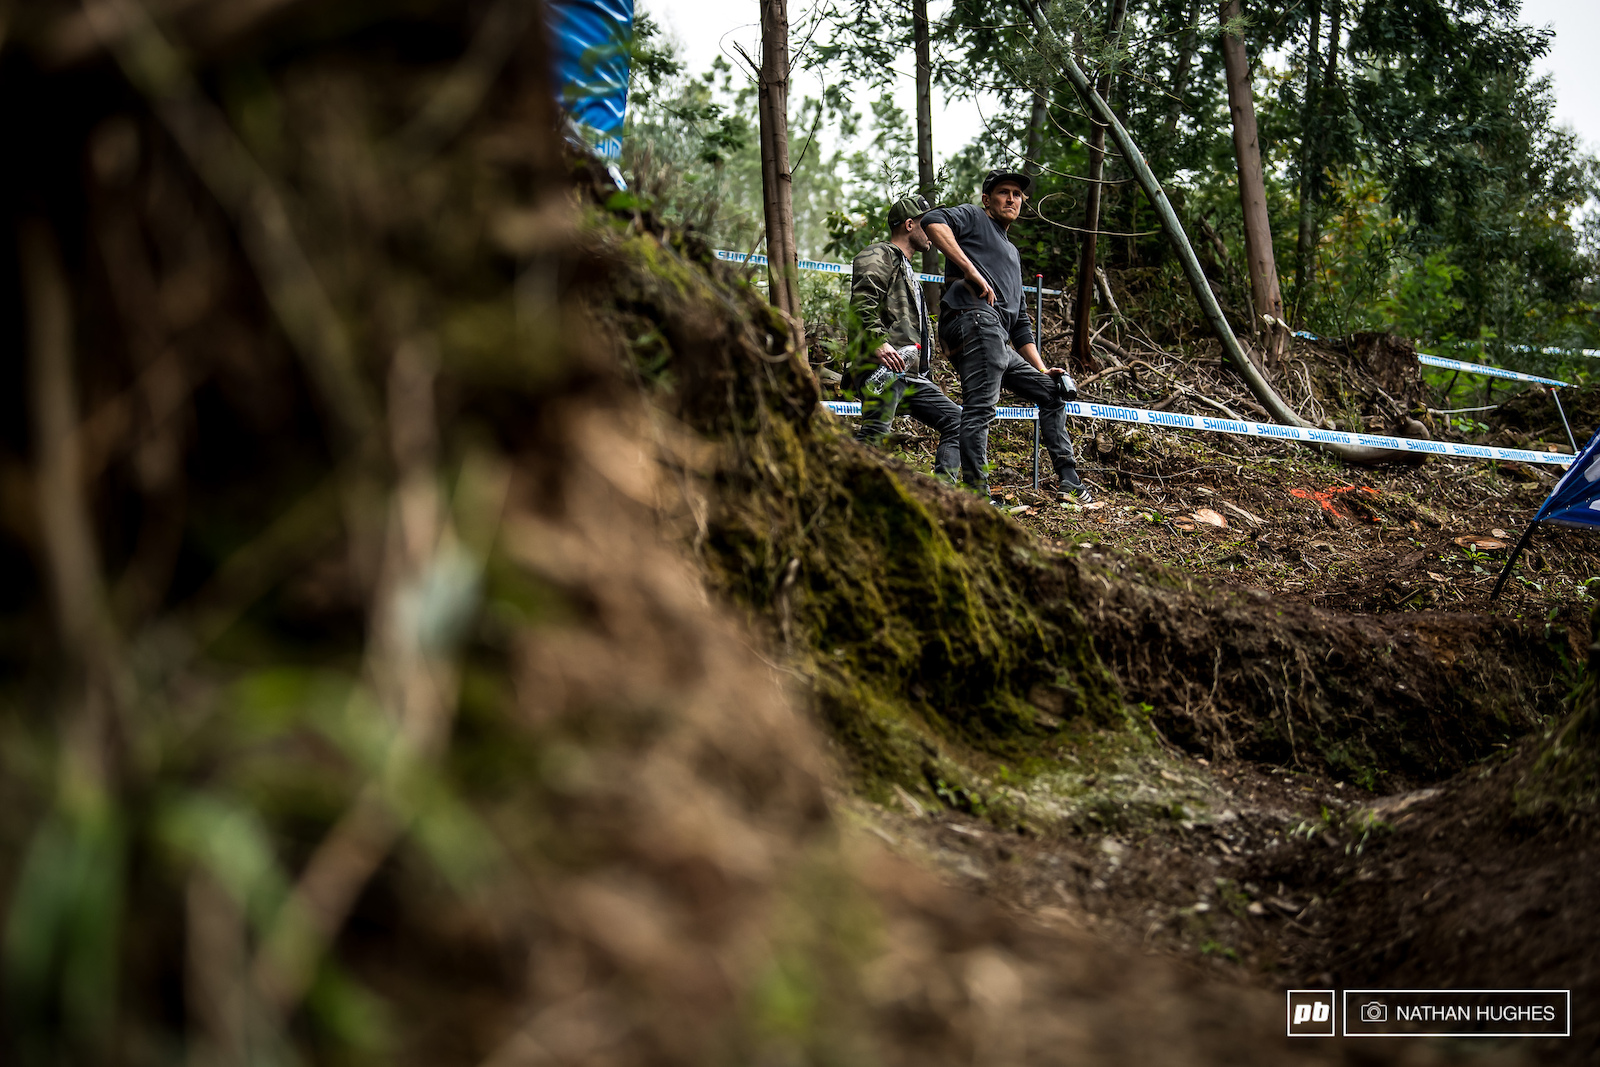 The next best thing to Rampage for Brendan Fairclough who will hopefully do damage on this gnarly track.